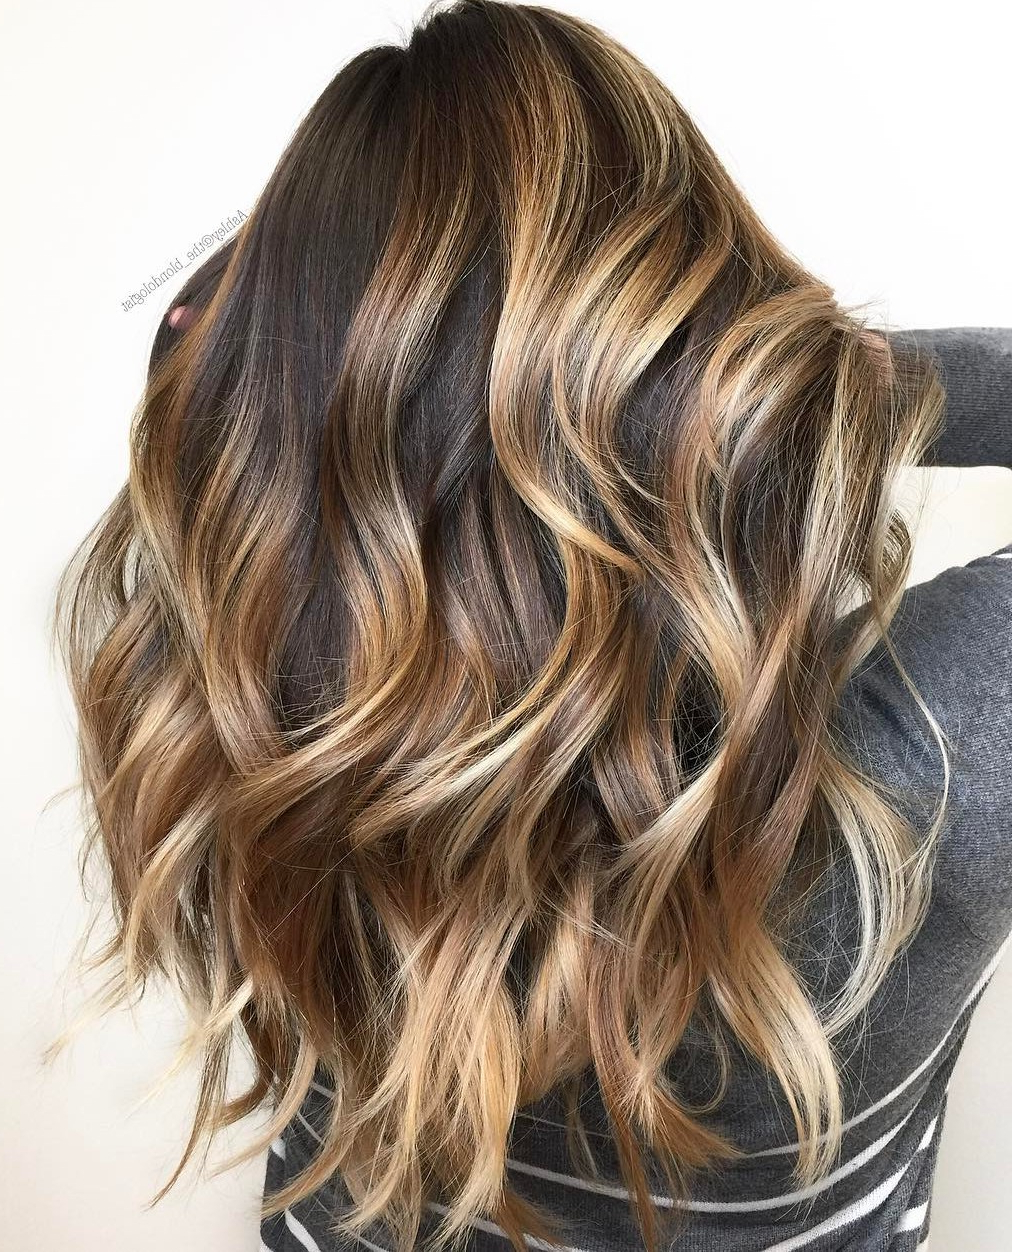 Hairstyles And Haircuts For Thick Hair In 2018 — Therighthairstyles For Short And Classy Haircuts For Thick Hair (View 14 of 20)